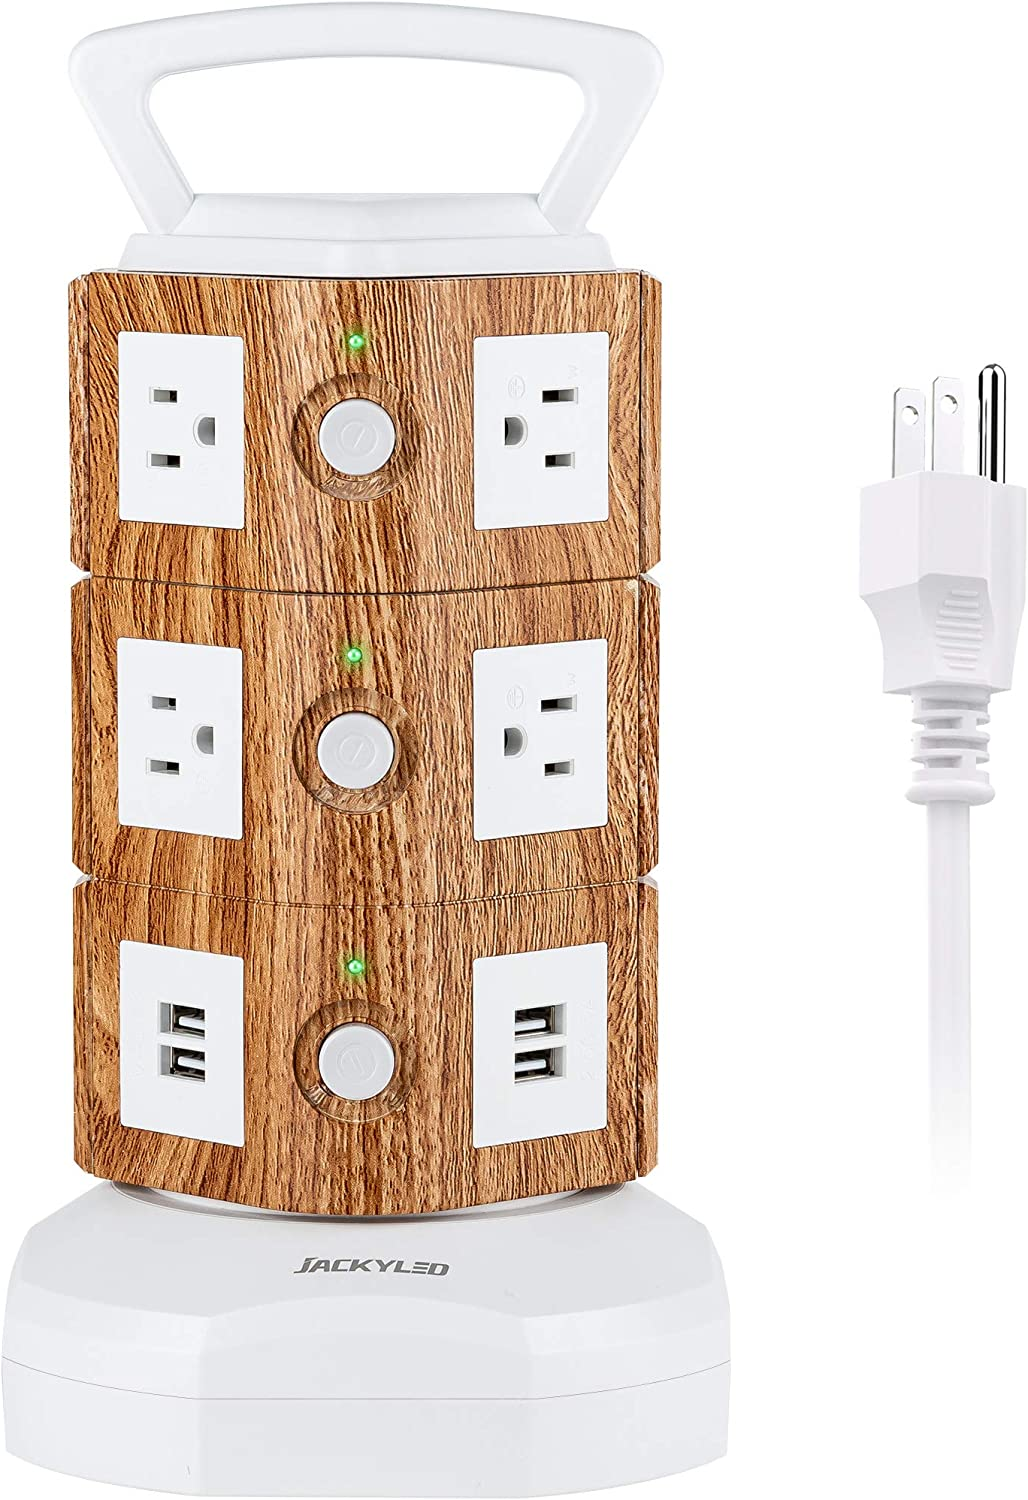 JACKYLED Power Strip Tower Surge Protector 10 AC Outlets and 4 USB Ports with 6.5ft Heavy Duty Extension Cord Electric Charging Station for Home Office Dorm Laptop Computer White and Light Walnut